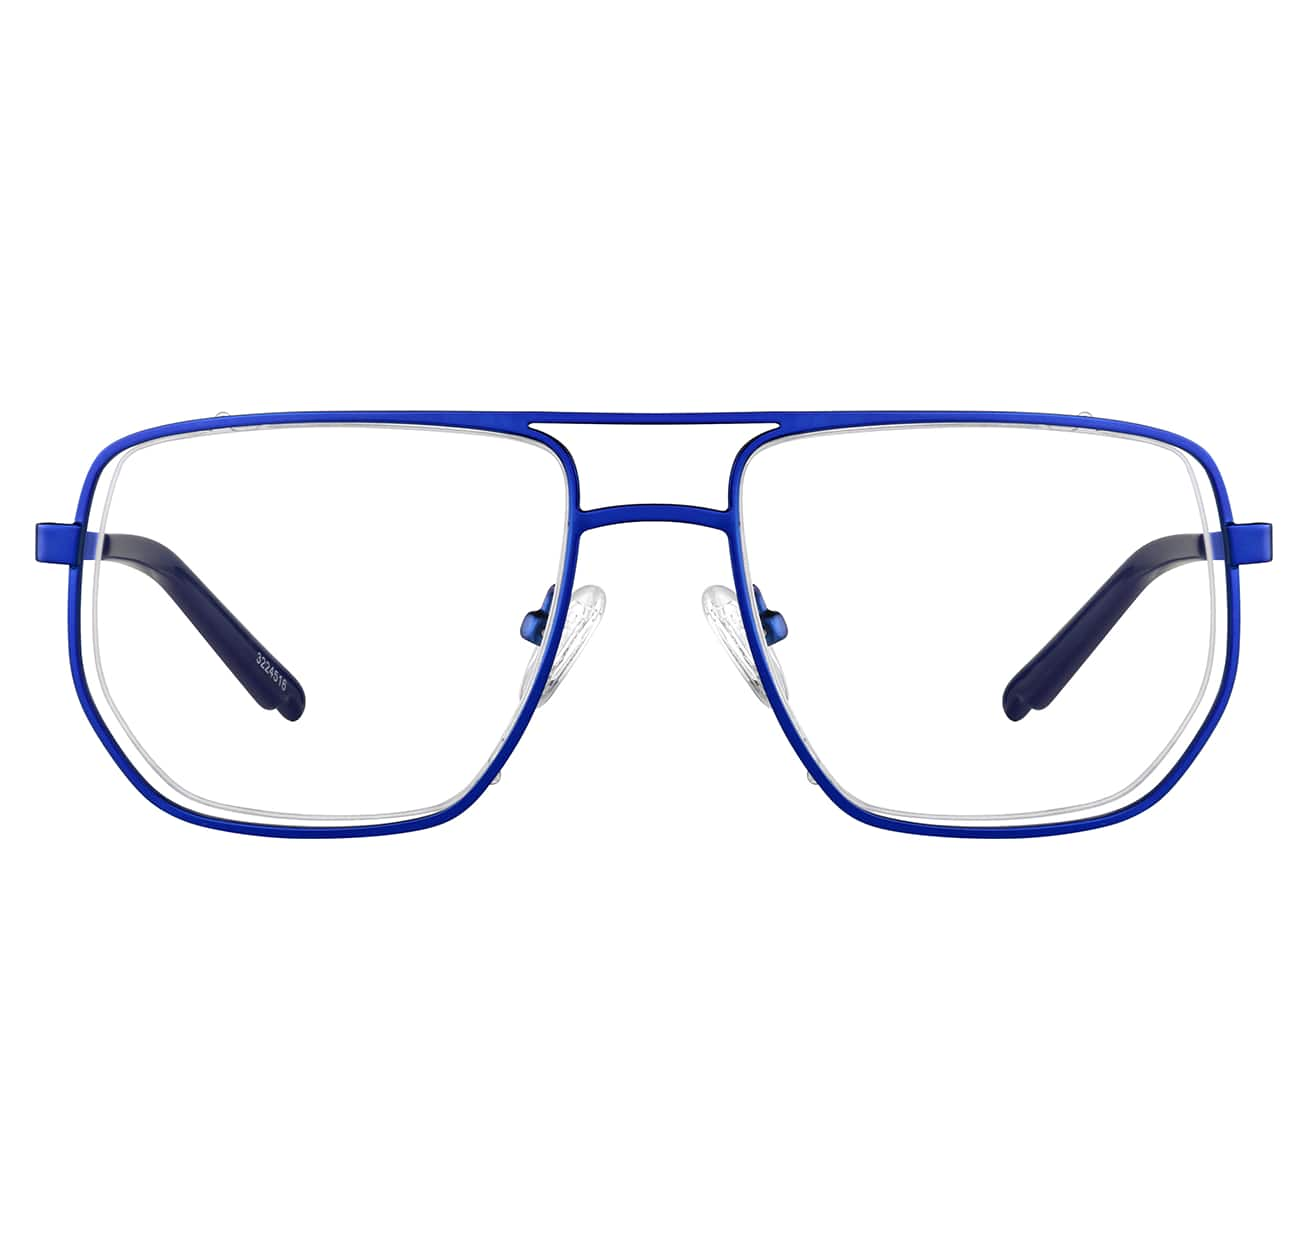 Image of Zenni blue aviator glasses #3224516 I am powerful